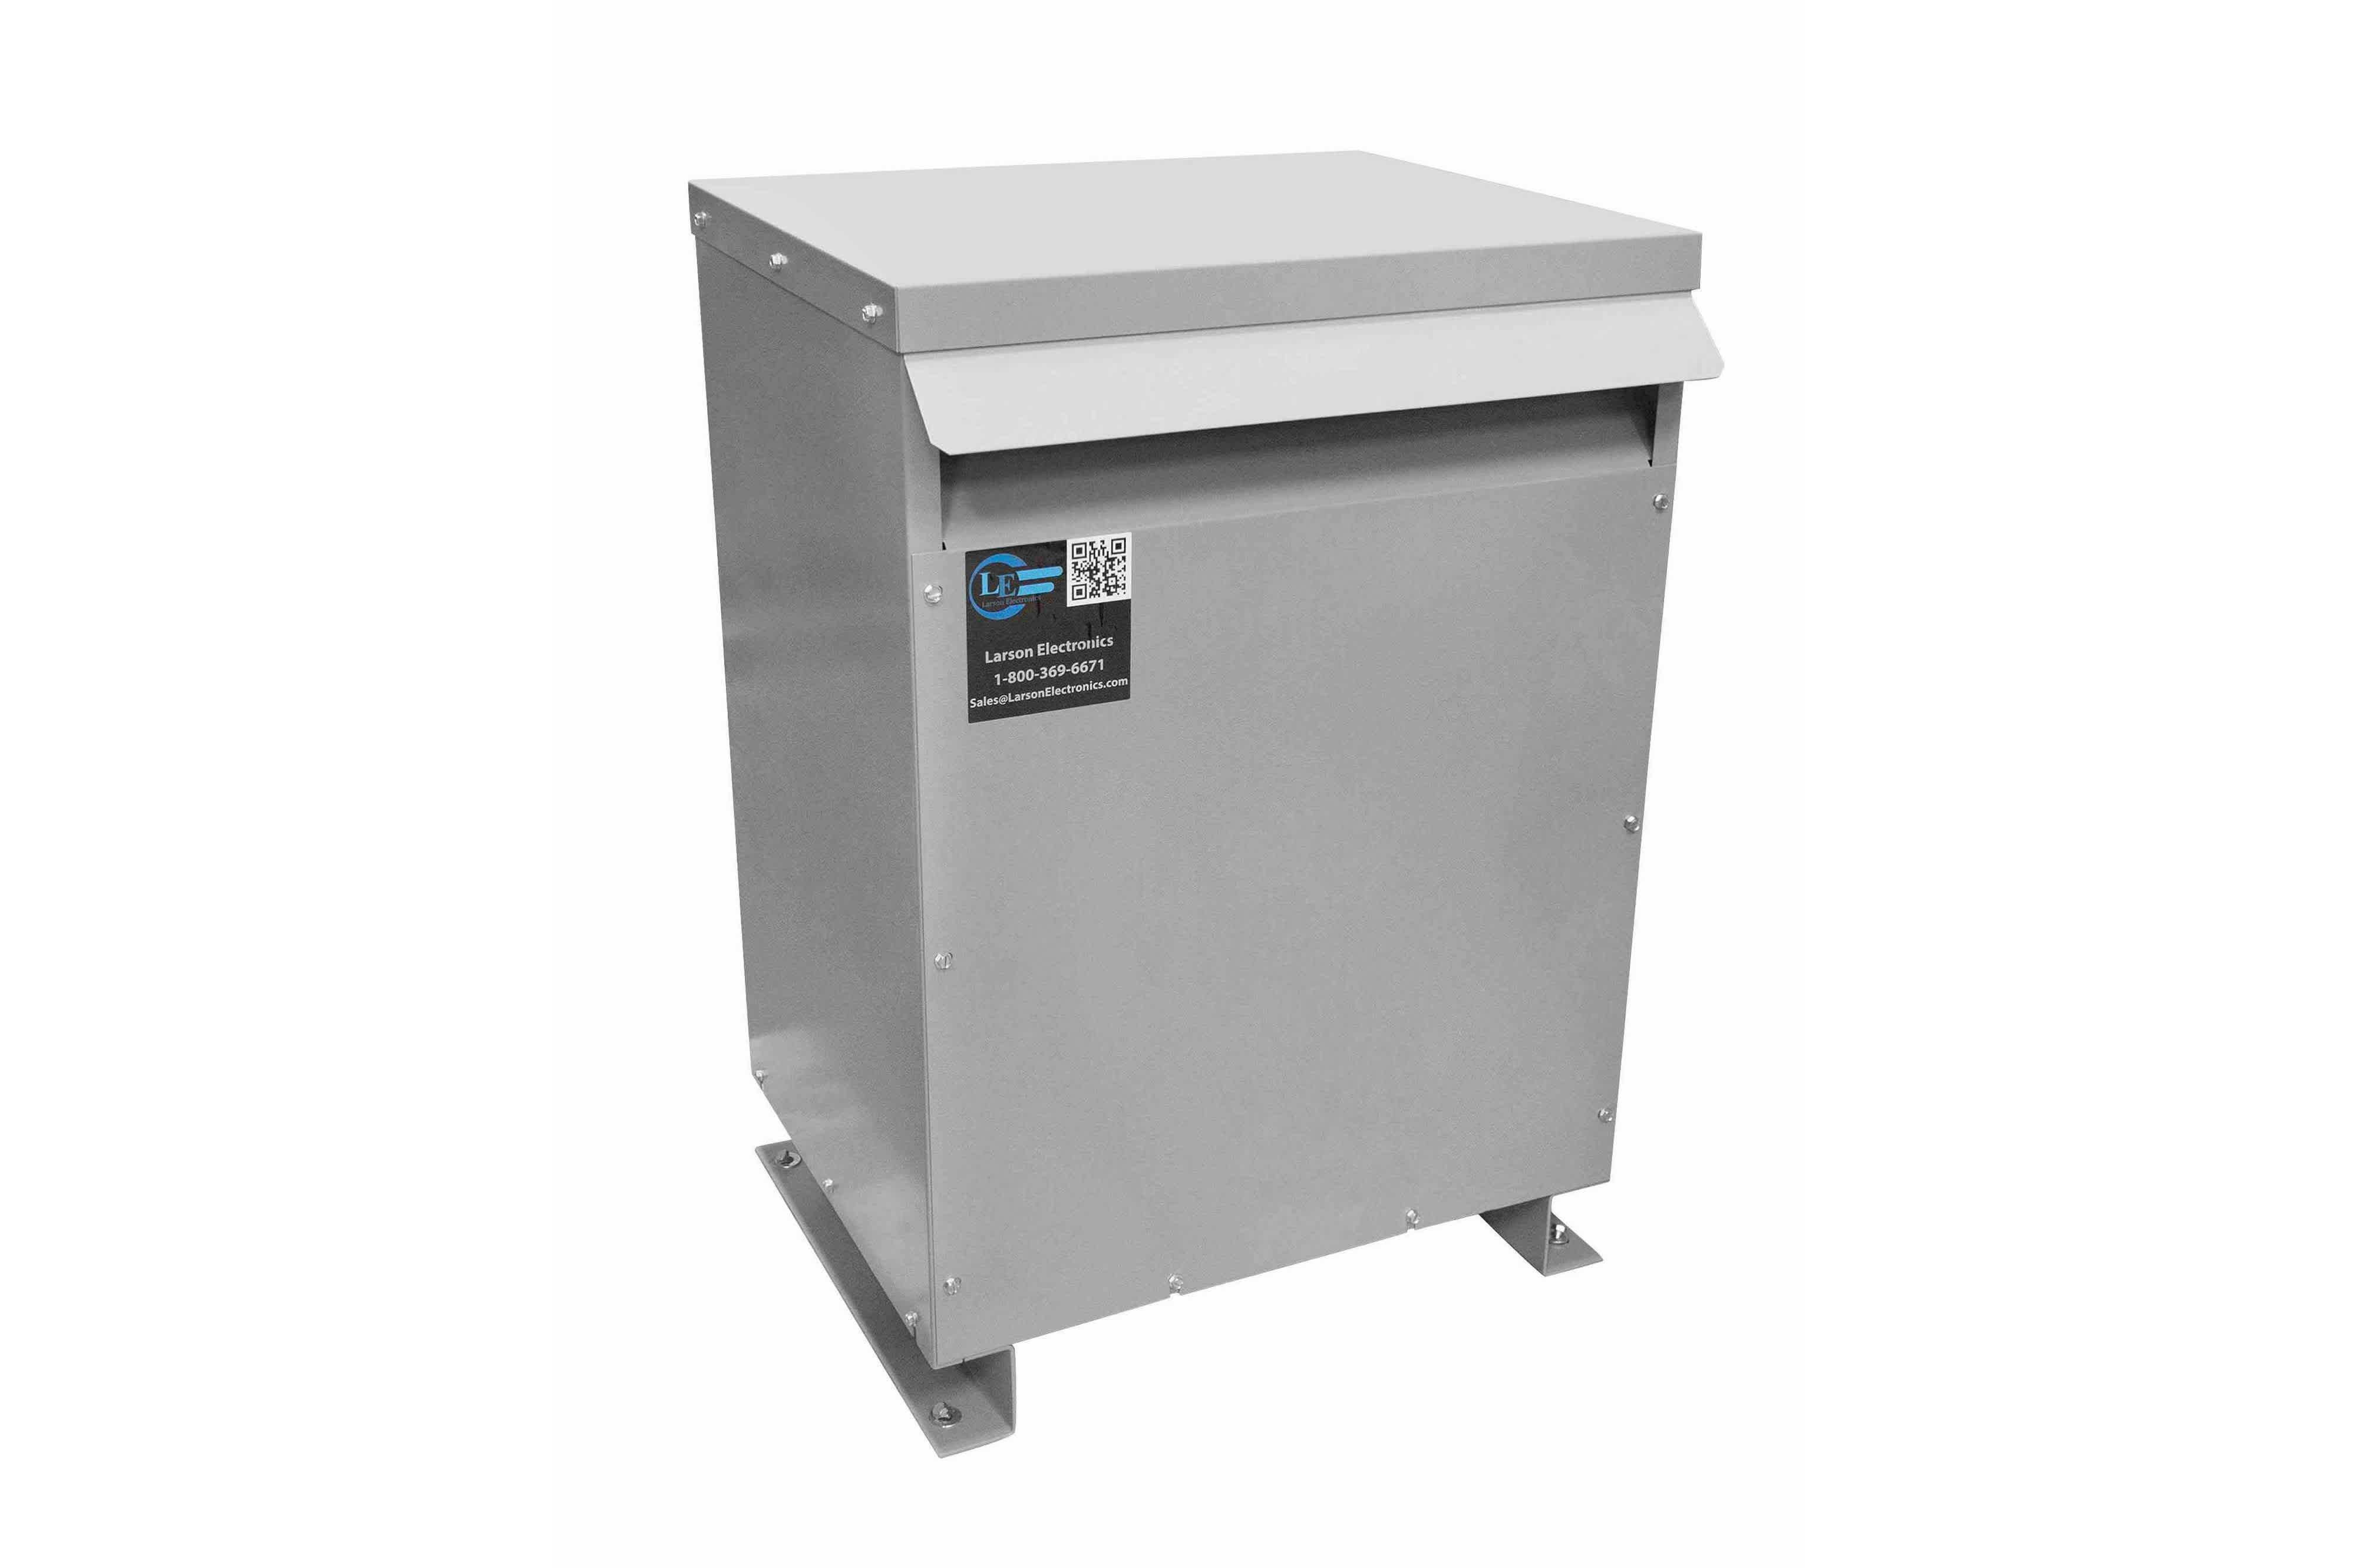 20 kVA 3PH Isolation Transformer, 460V Delta Primary, 208V Delta Secondary, N3R, Ventilated, 60 Hz